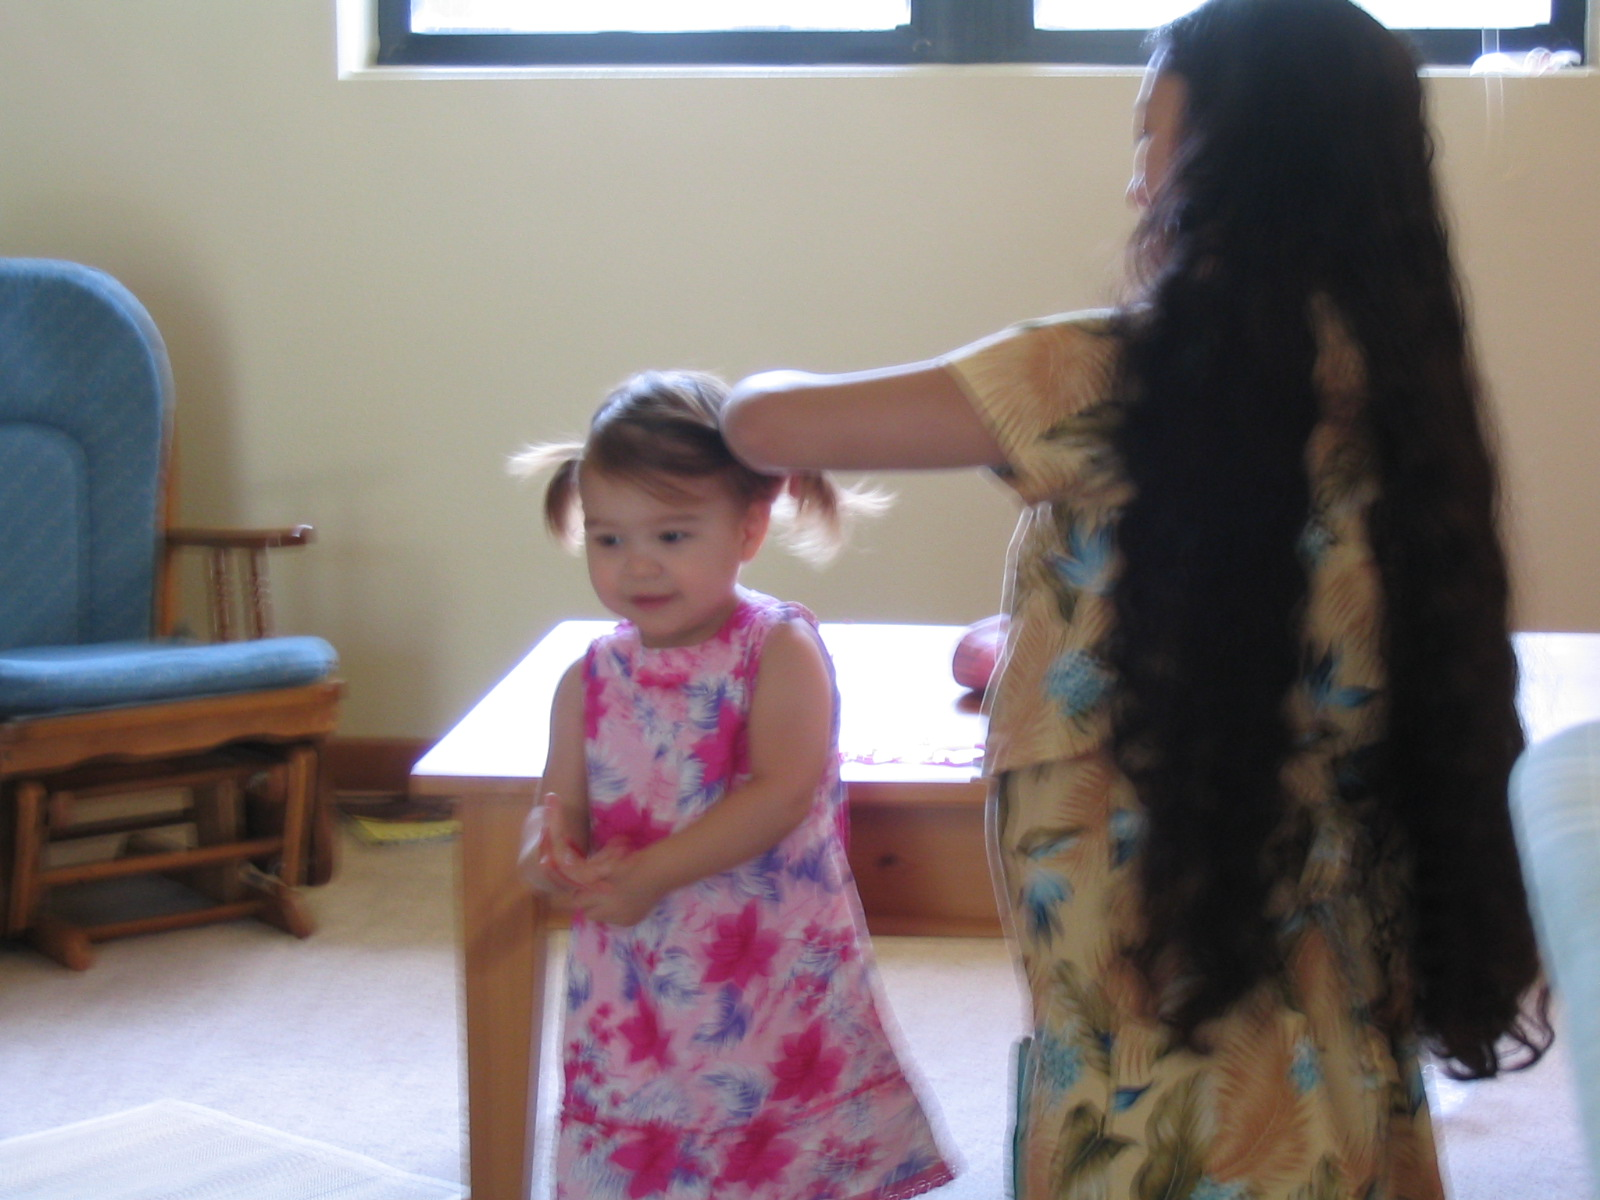 April 2005 021 - Franicia Mommy fixing Heistheway's hair.jpg